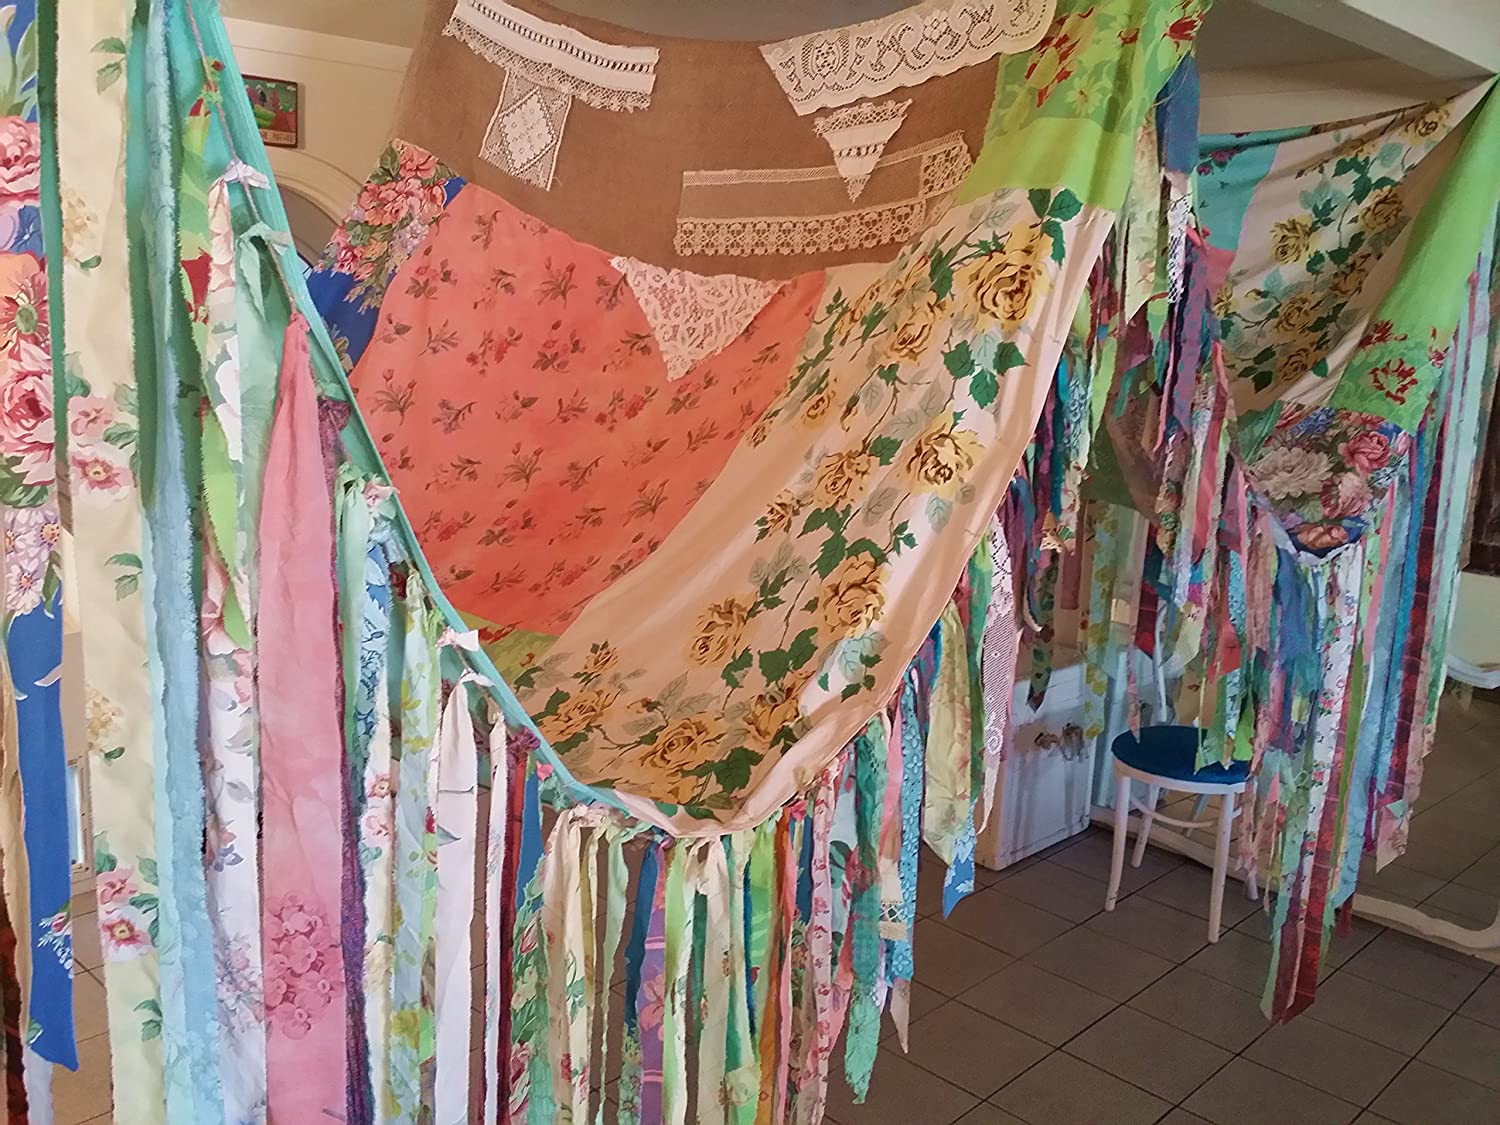 Amazon.com BOHO Tent Canopy teepee vintage textiles Gypsy hippie patchwork bed canopy Wedding curtain photo prop festival Bohemian Shabby Chic party HUGE ... & Amazon.com: BOHO Tent Canopy teepee vintage textiles Gypsy hippie ...